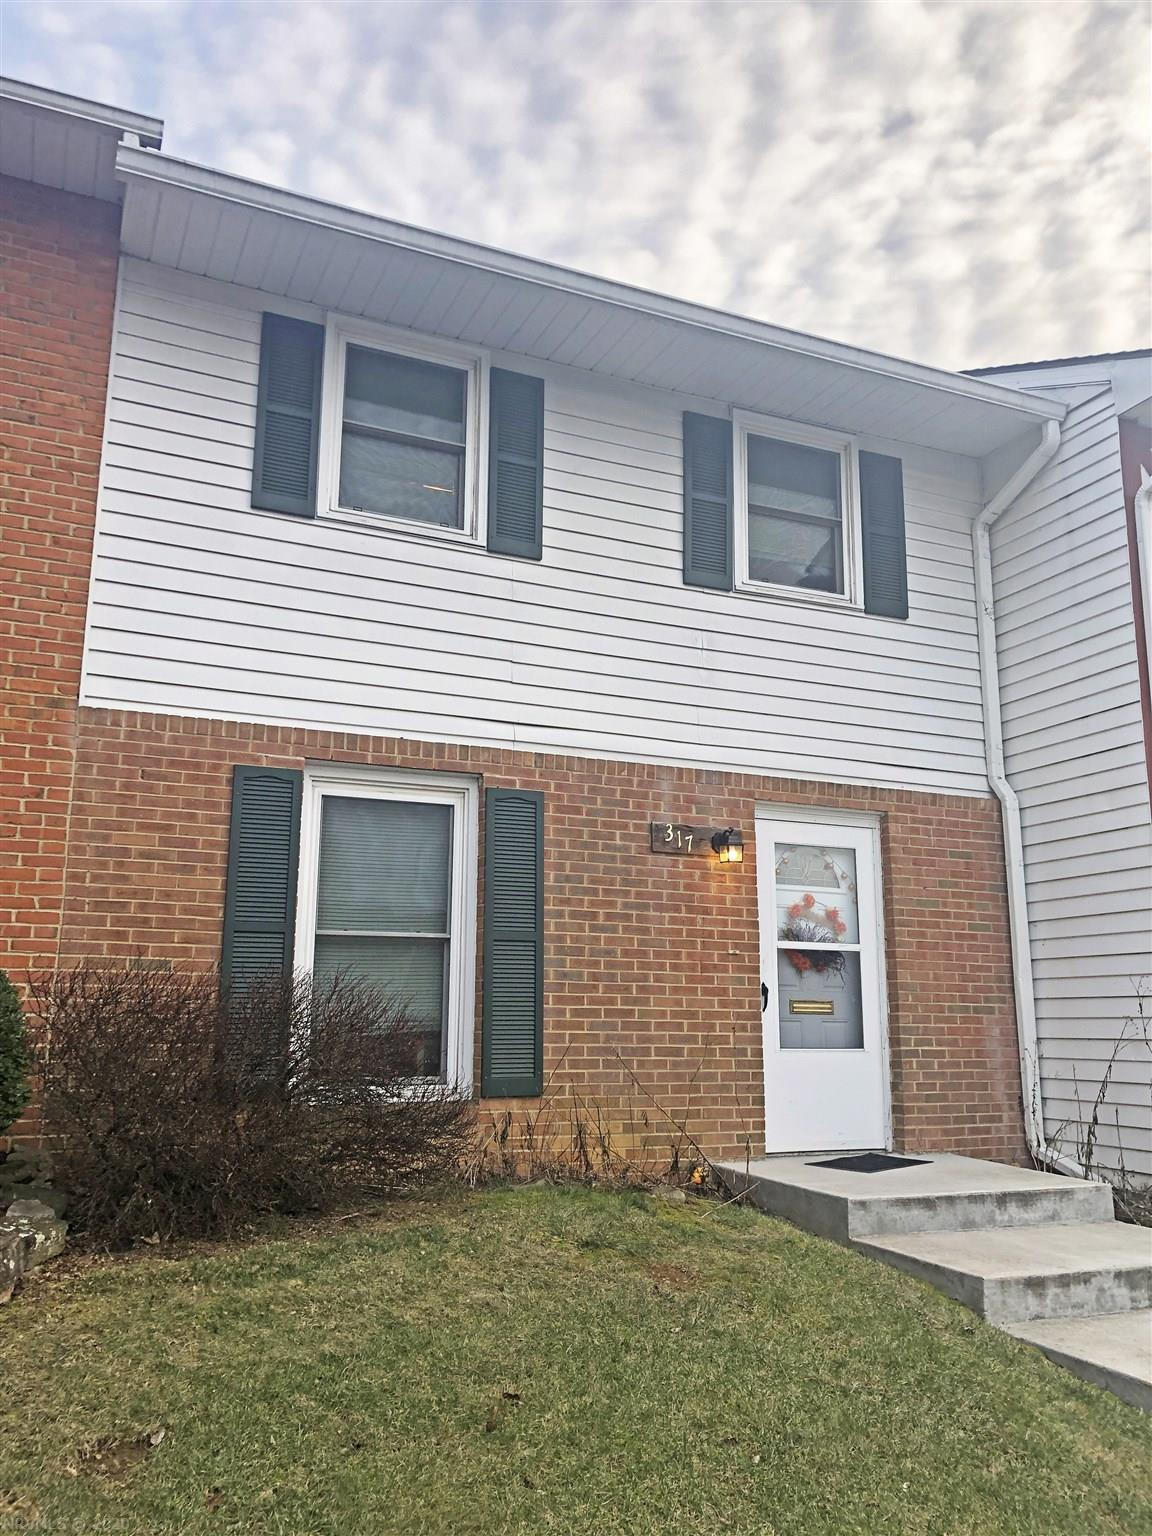 3 bedroom townhome in the heart of Blacksburg with local shops and restaurants nearby. Settled in a family friendly neighborhood at Carriage Hill-perfect for riding bikes or walking the dog. Open living/dining space with walk-out to patio and fenced-in yard – great for private entertaining. This property is sure to go fast so schedule a showing today!